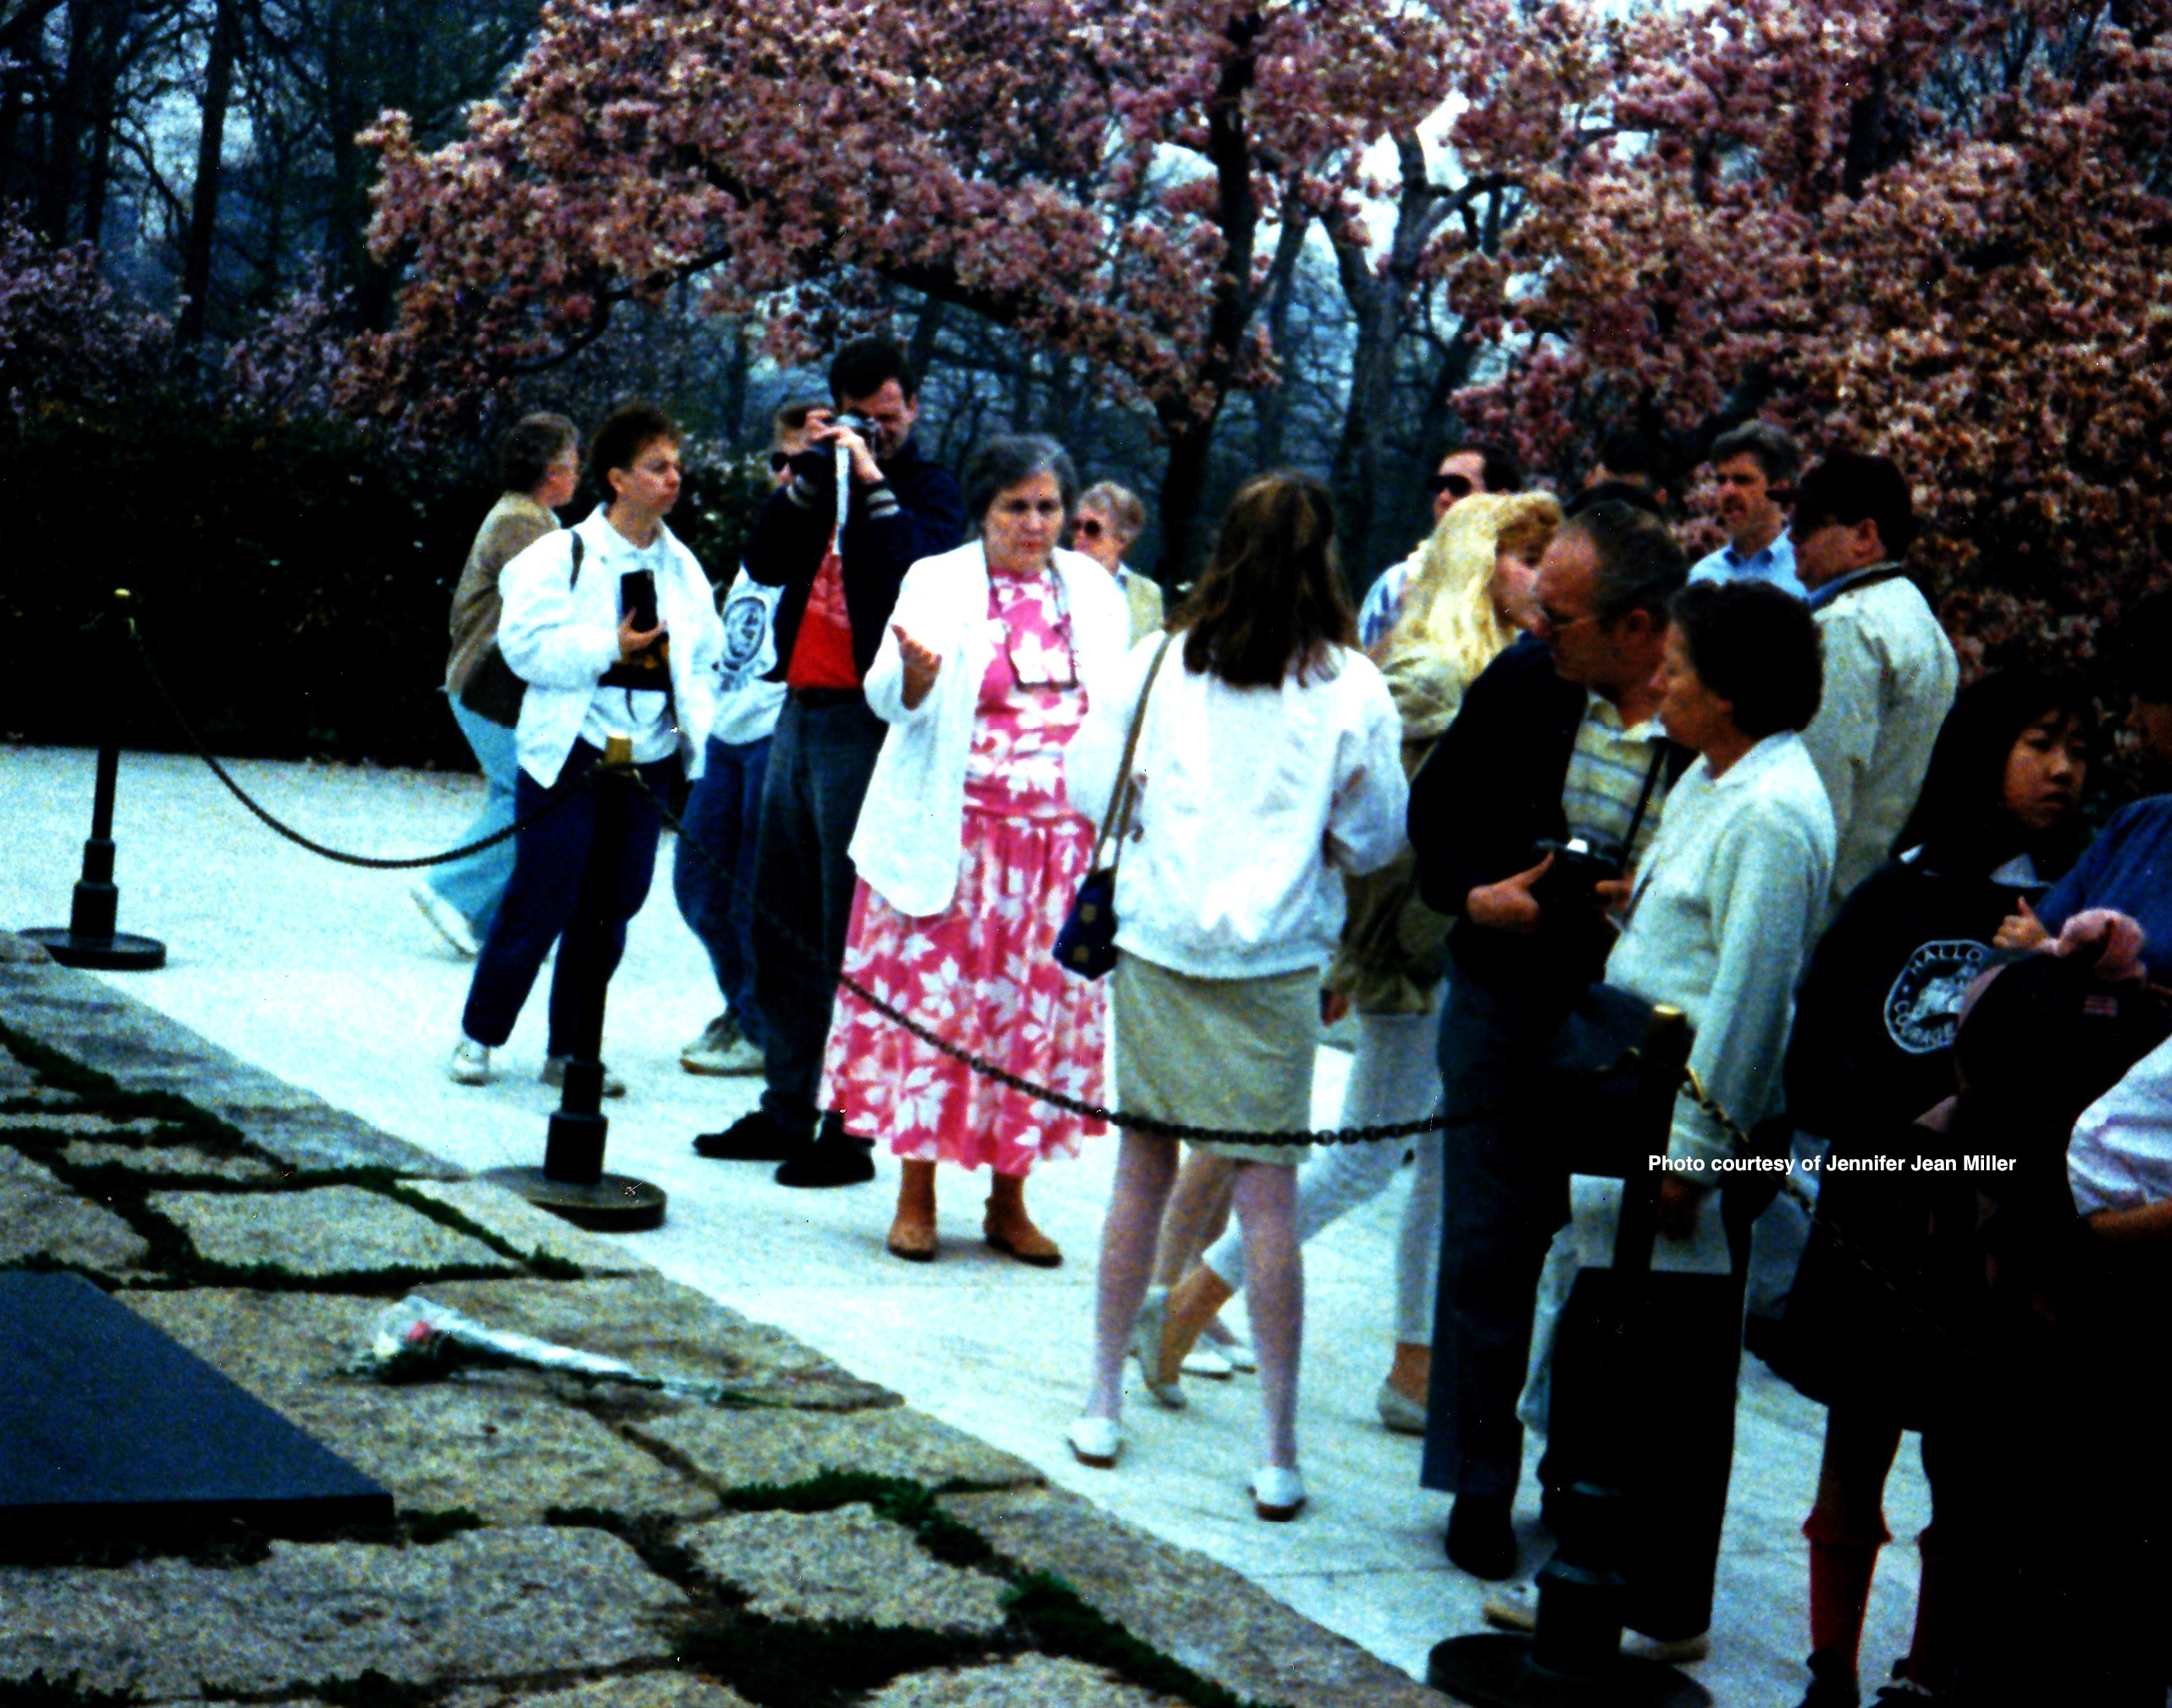 A blonde flash as the author of this story is photographed, after leaving a floral tribute on the grave of JFK. Photo courtesy of Jennifer Jean Miller.